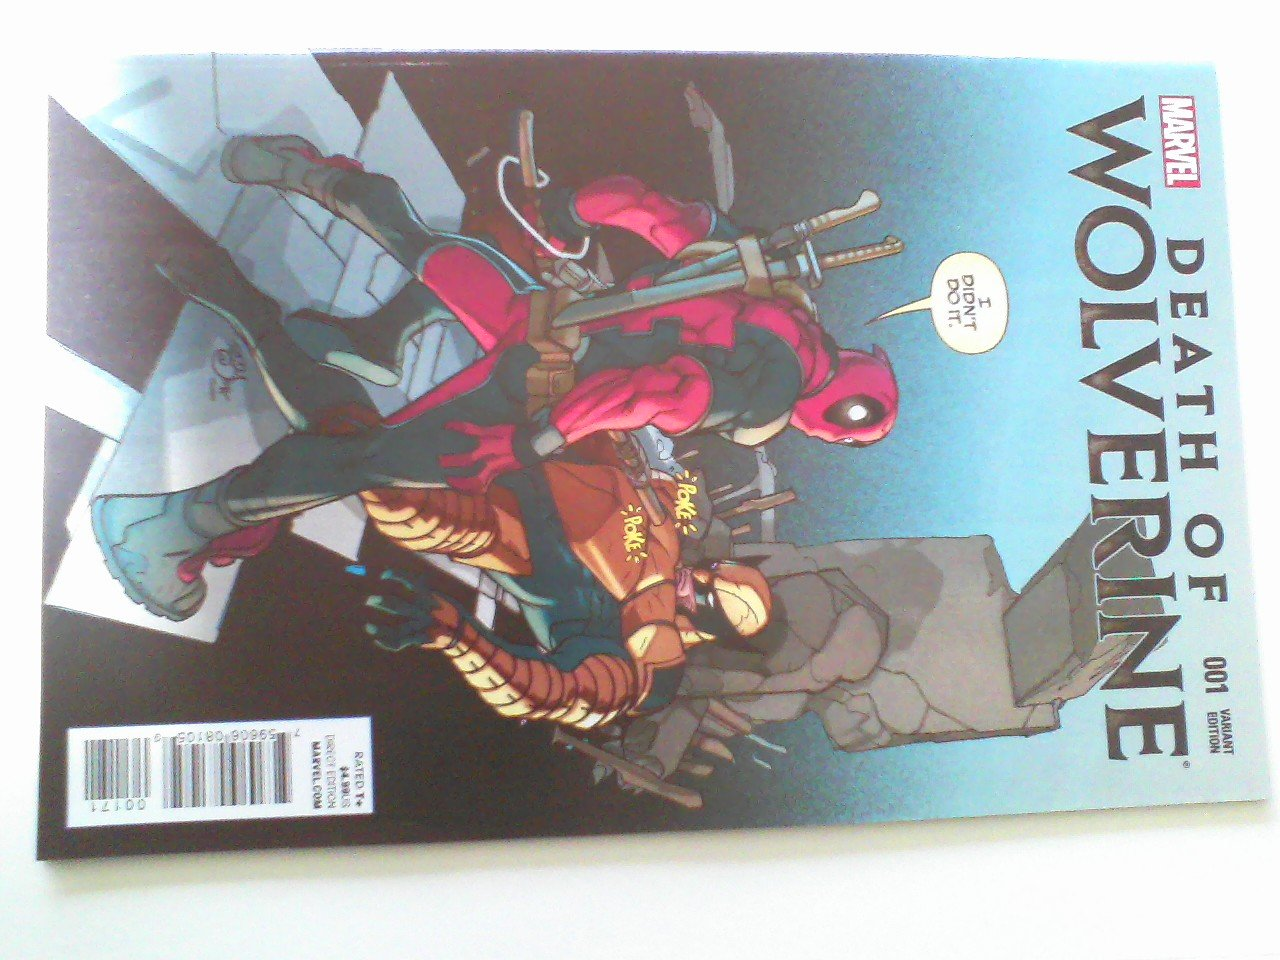 Death of Wolverine Deadpool Variant #18, X-force 1 ,X-force 2,X-force 11, X-force 15,X-force 23